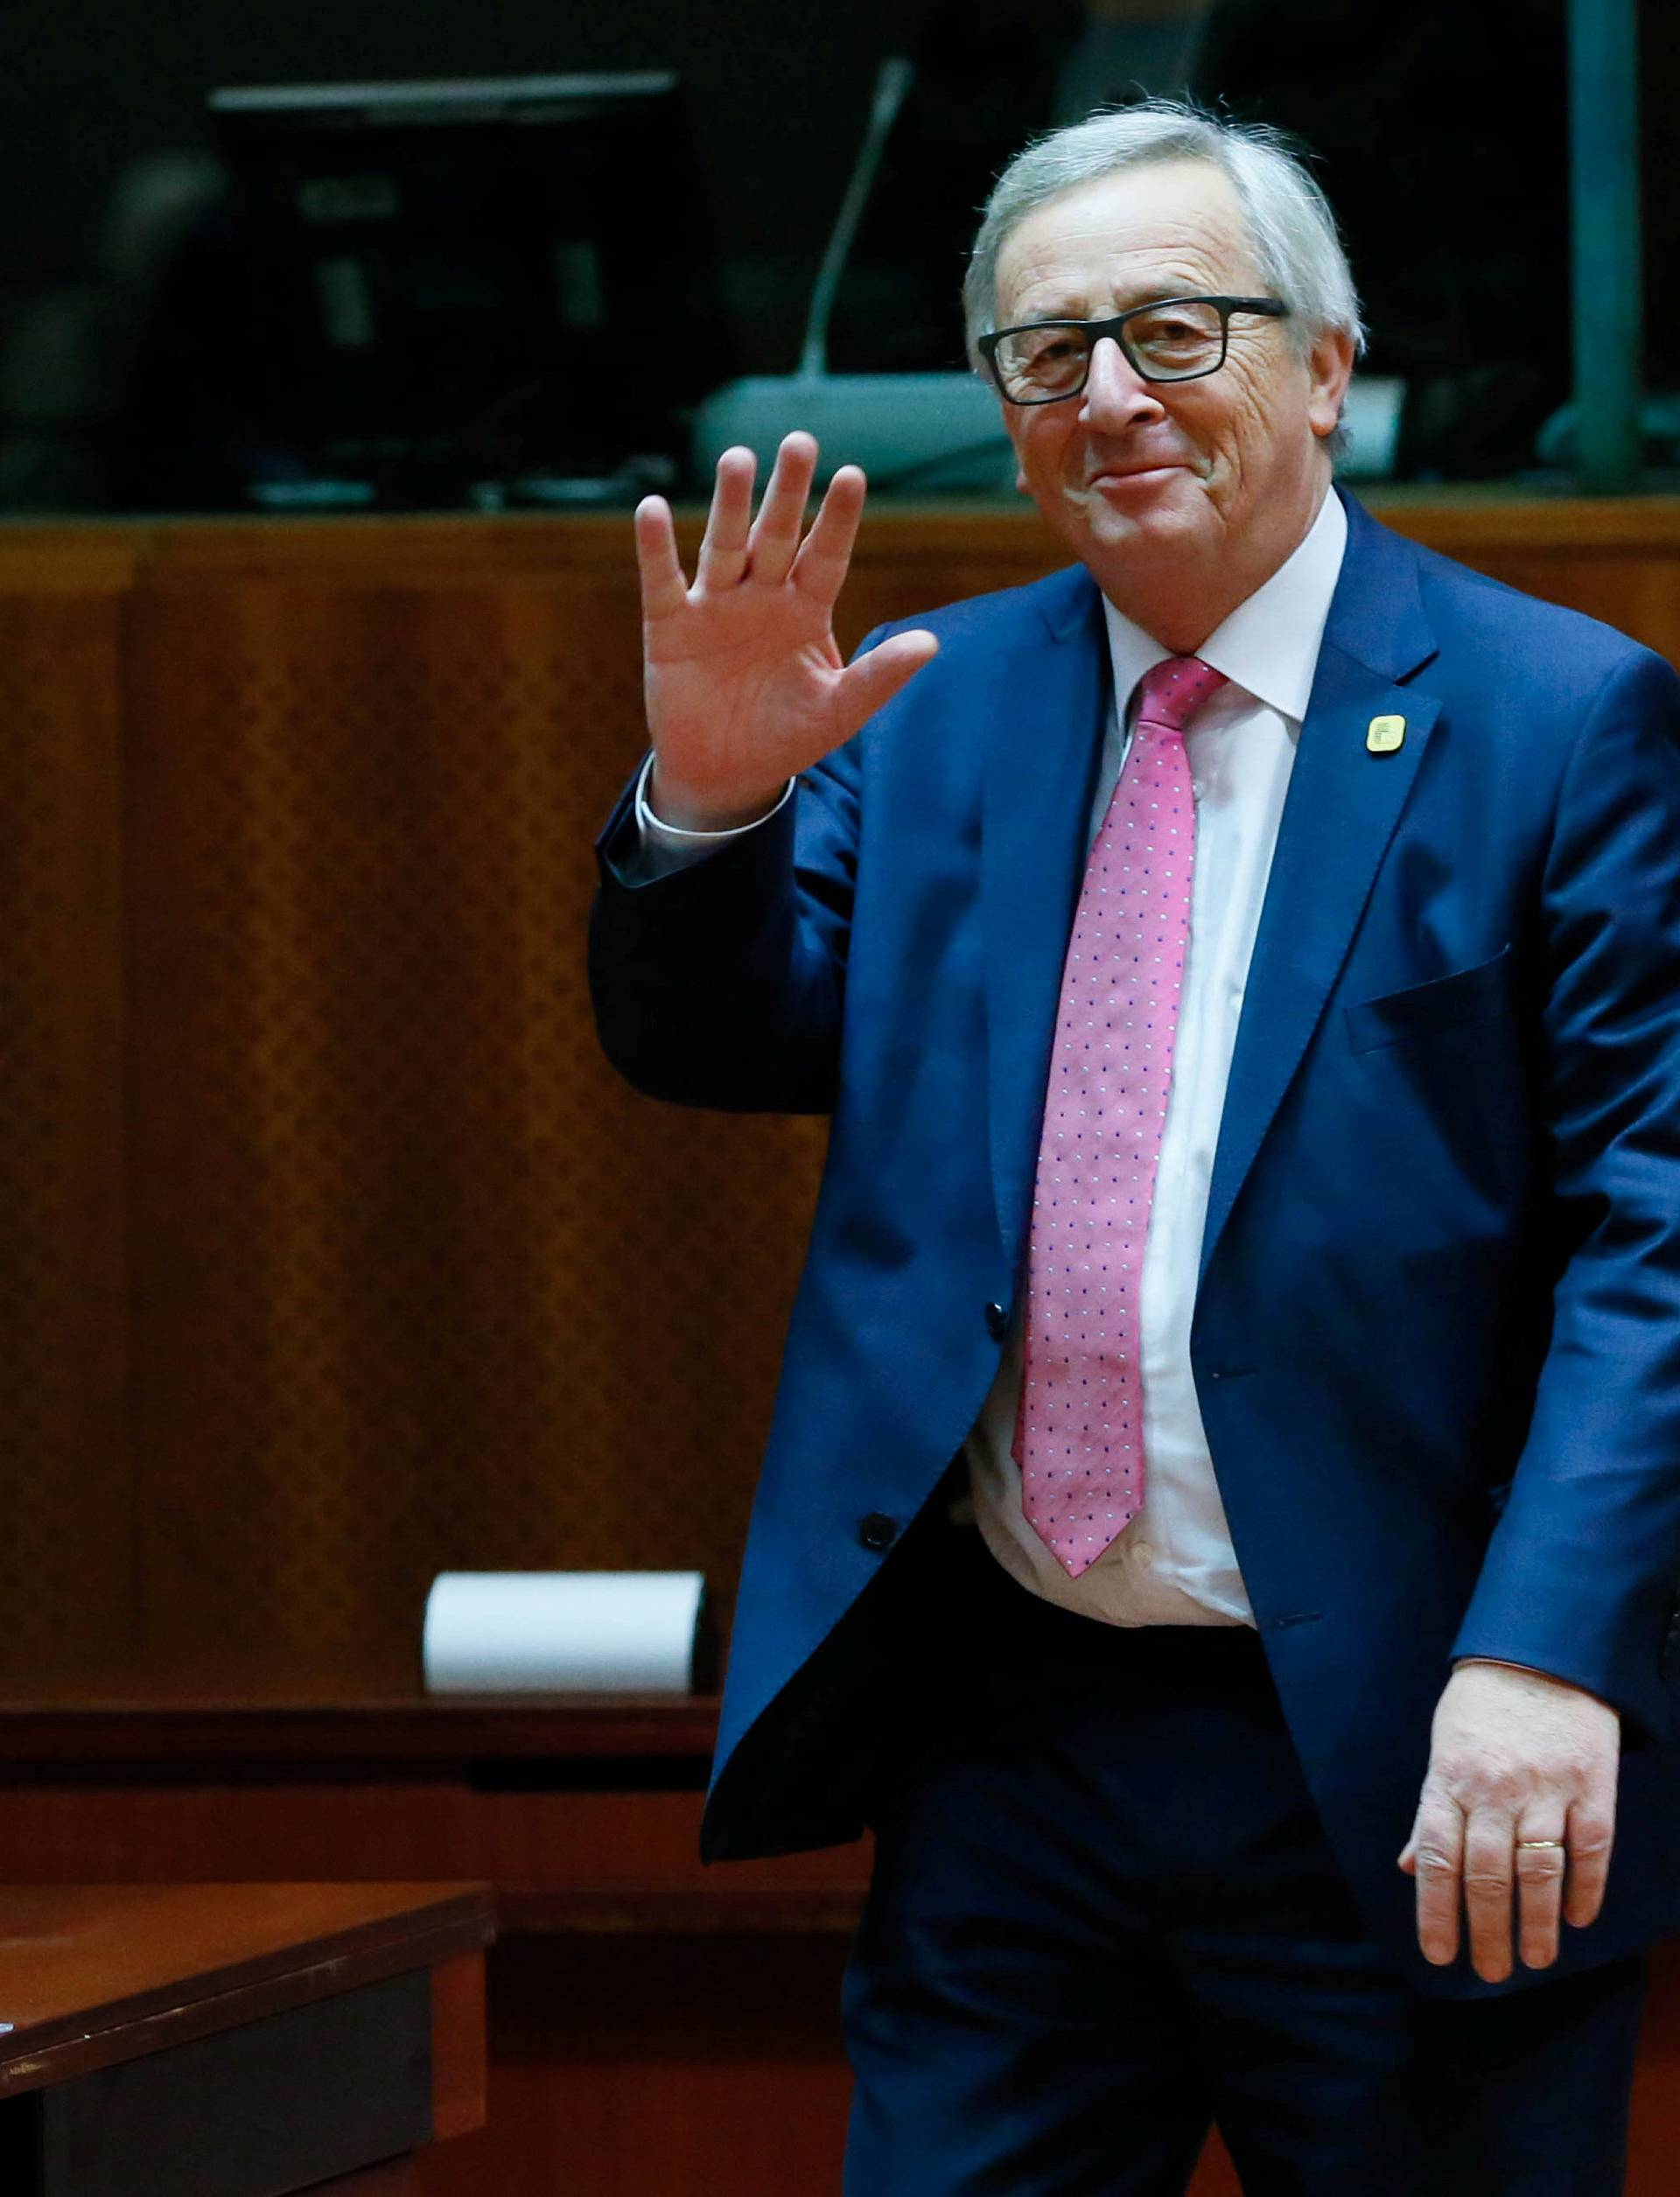 European Commission President Jean Claude Juncker attends a EU Summit at the European Council headquarters in Brussels